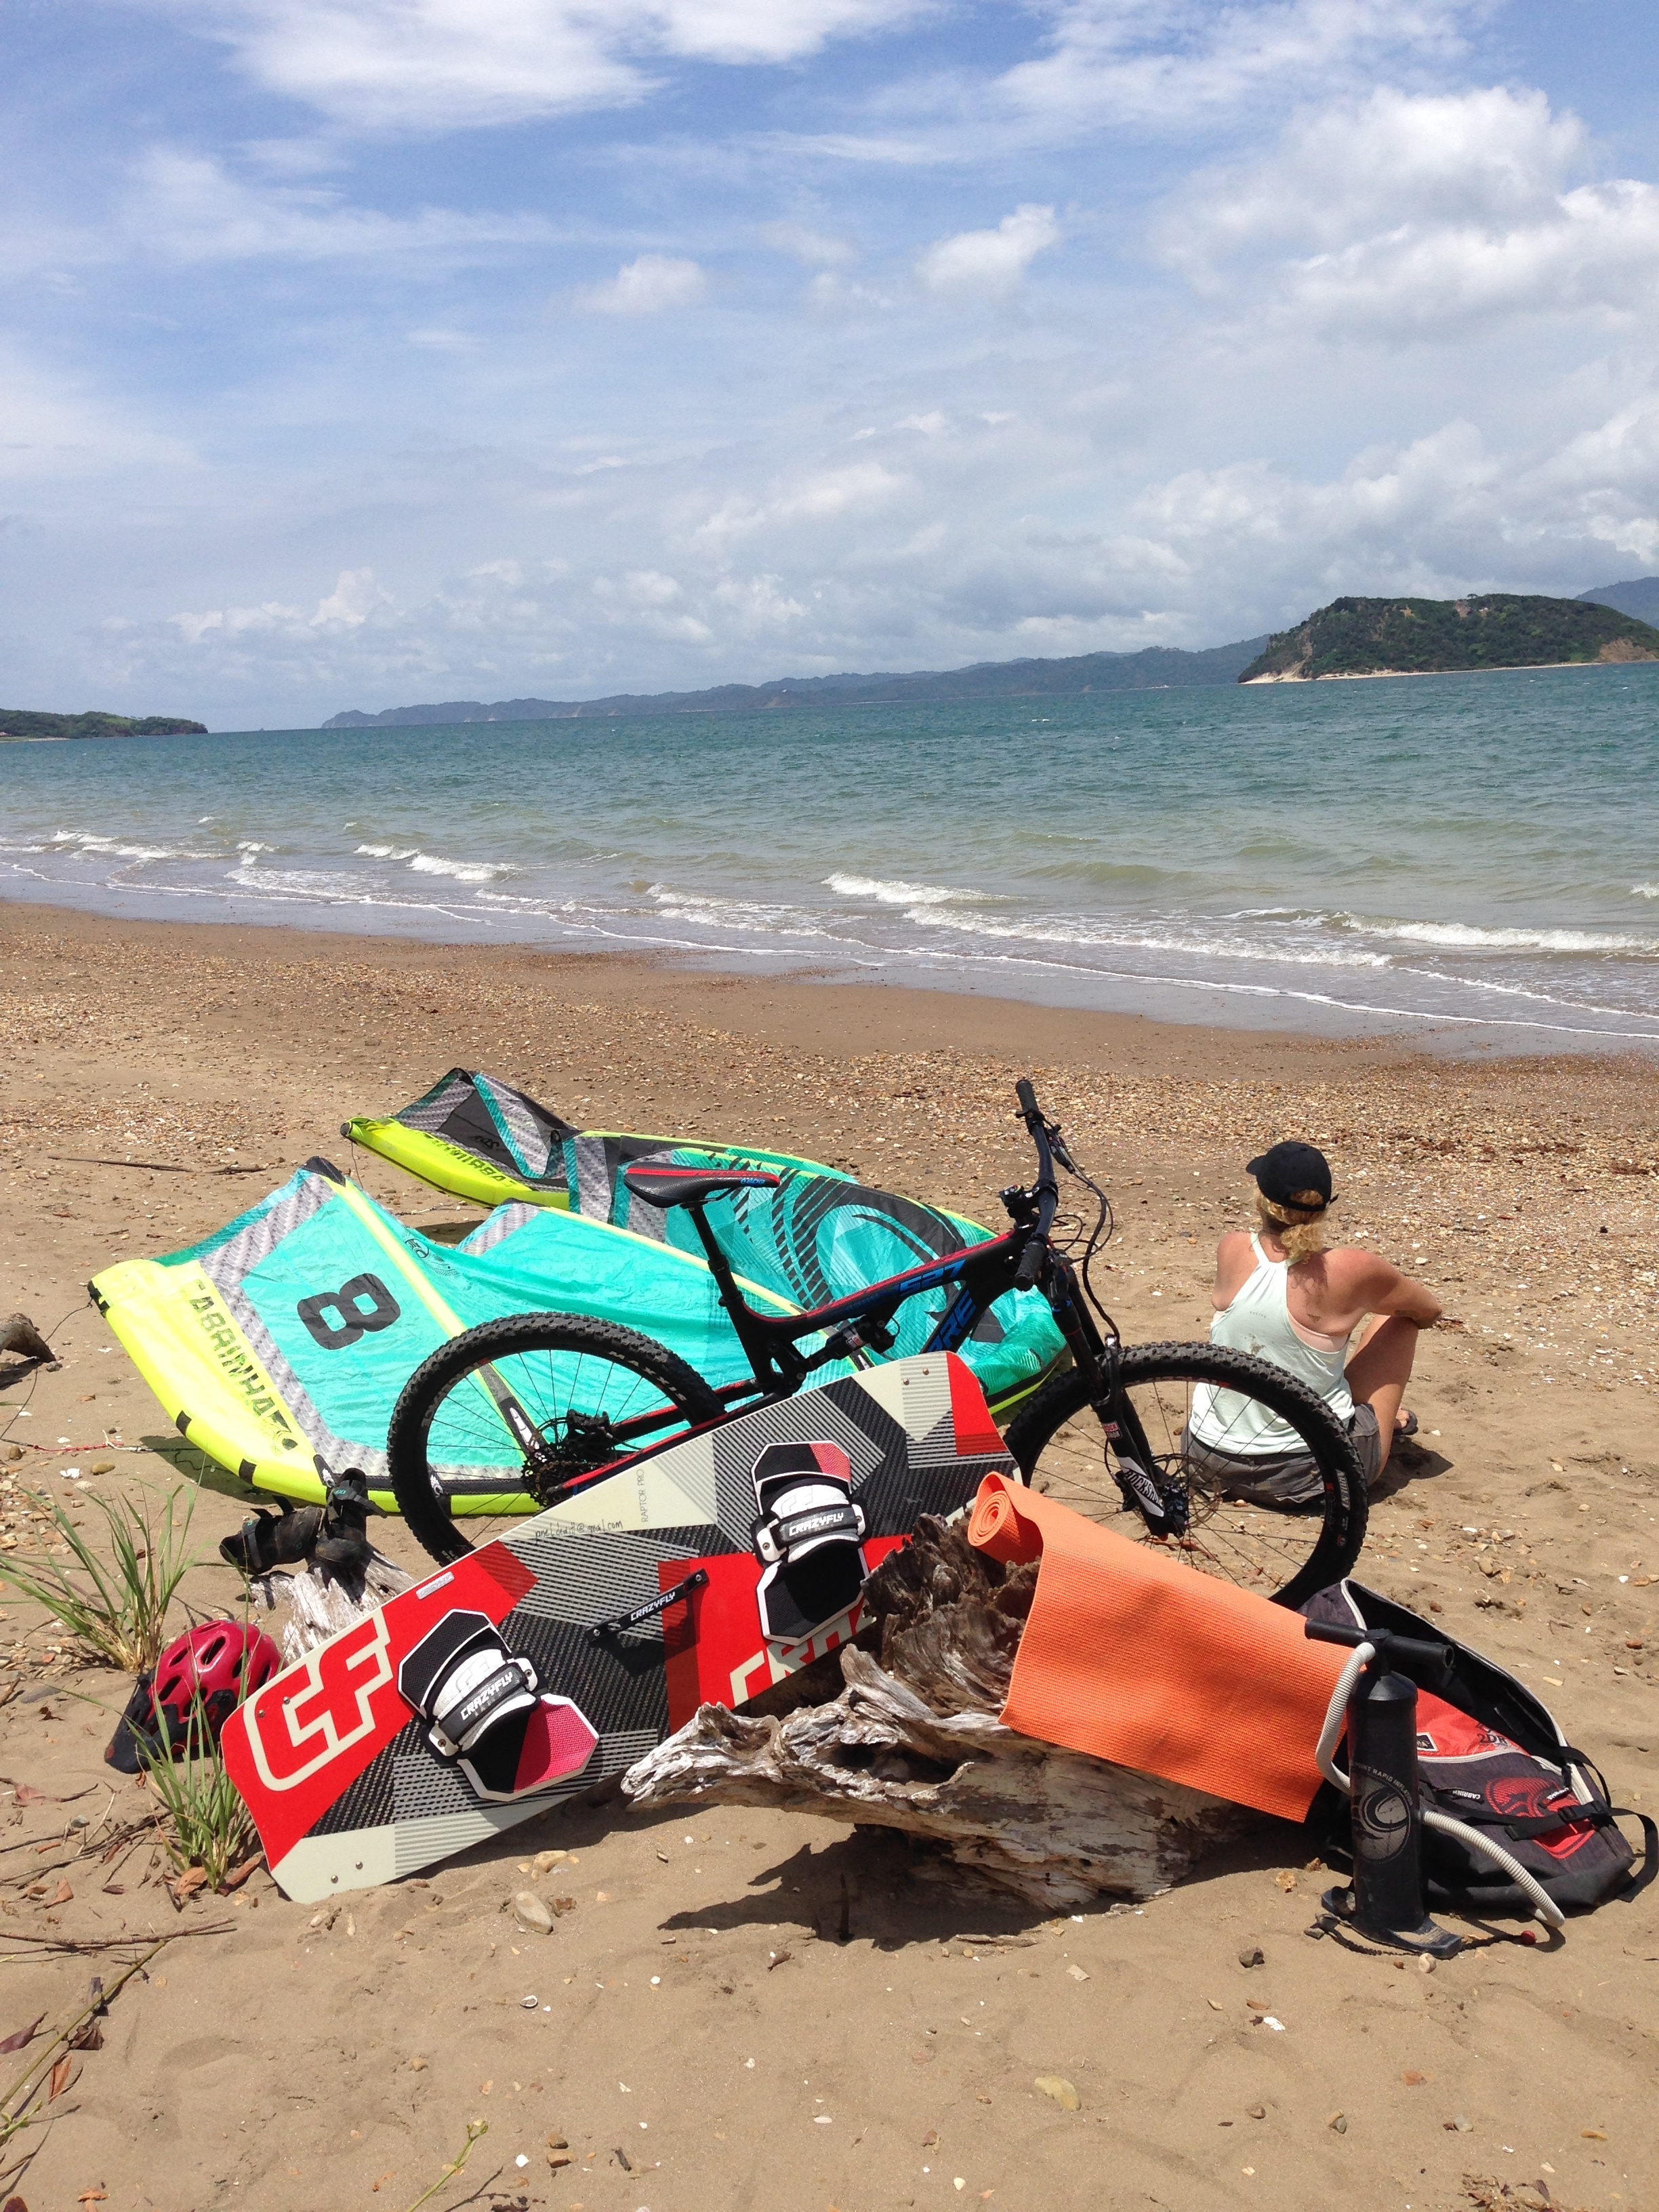 Mountain bike Urlaub Costa Rica